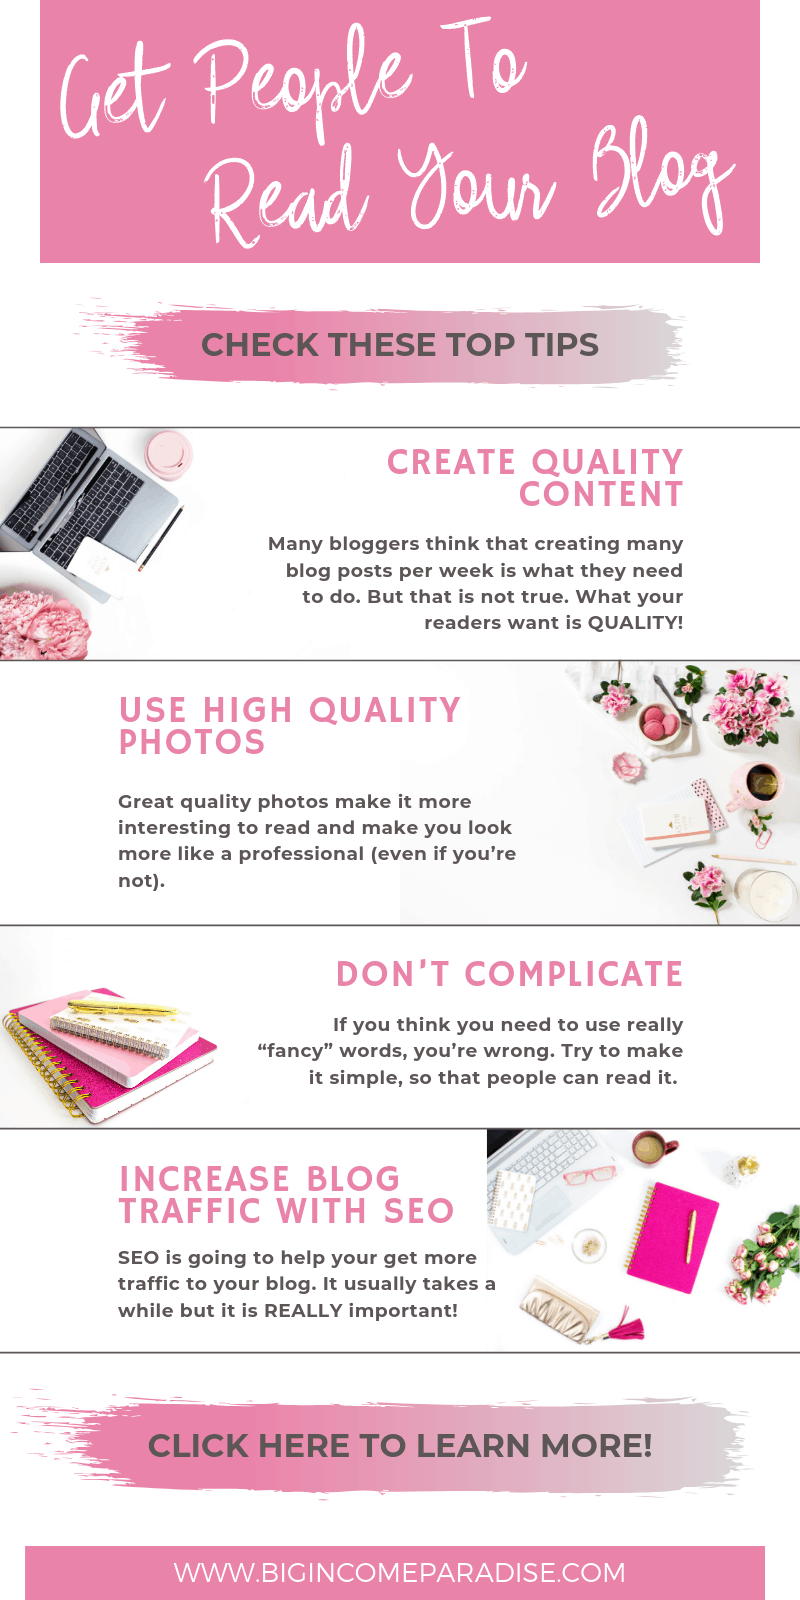 Are you wondering how to get blog readers? You are not alone but don't worry because my blog post will teach you. Get people to read your blog and also share it. Here is what you have to do to get traffic to your blog. #bigincomeparadise #blogtraffic #blogreaders #bloggingtips #blogging #connectingwithreaders #blogreaders #growyourblog #blogtips